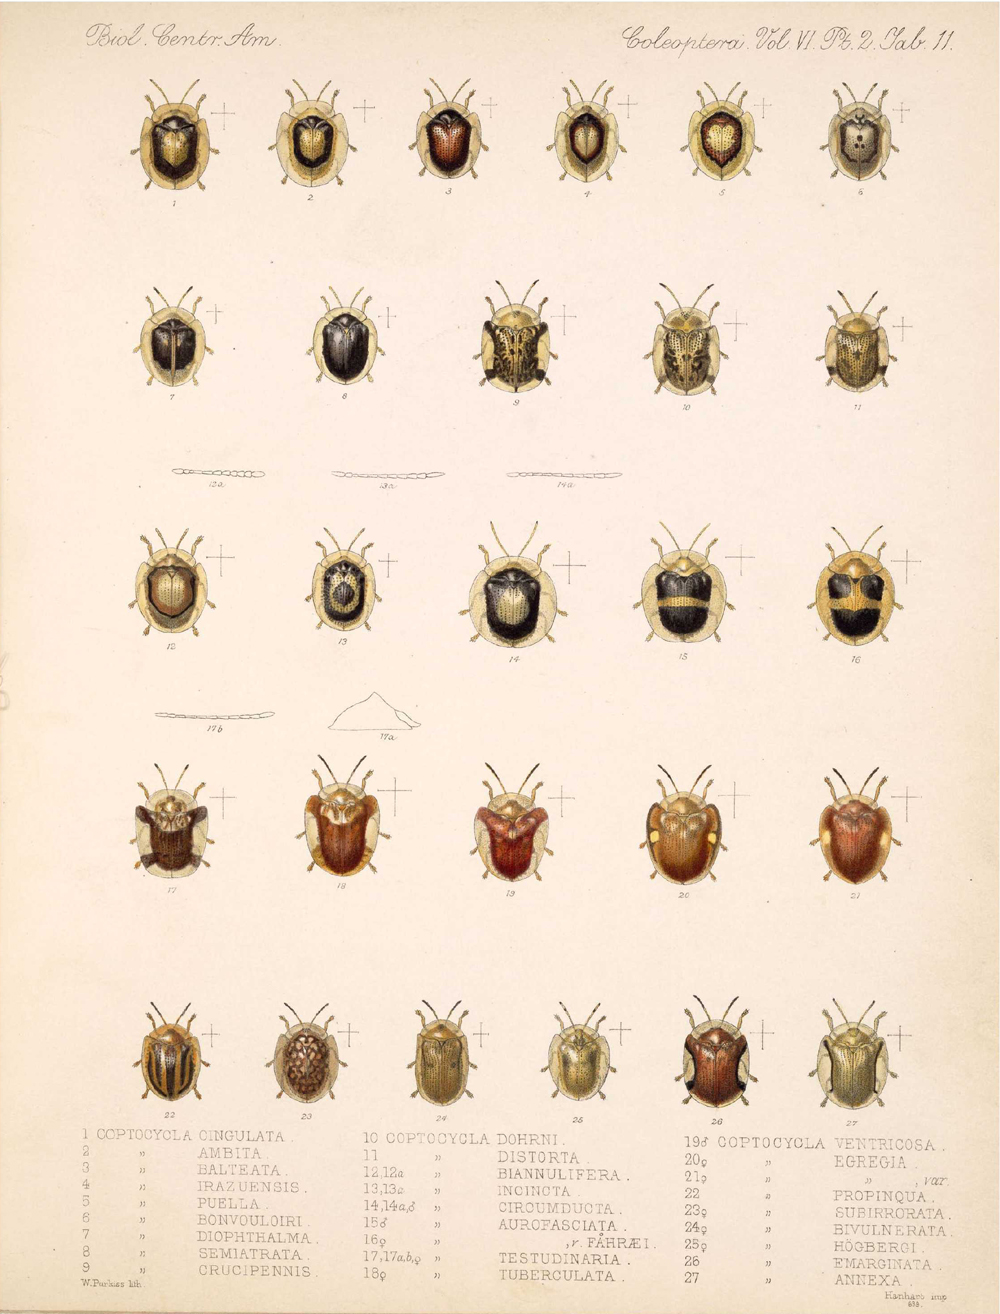 Beetles,  Image number:bca_12_06_02_279